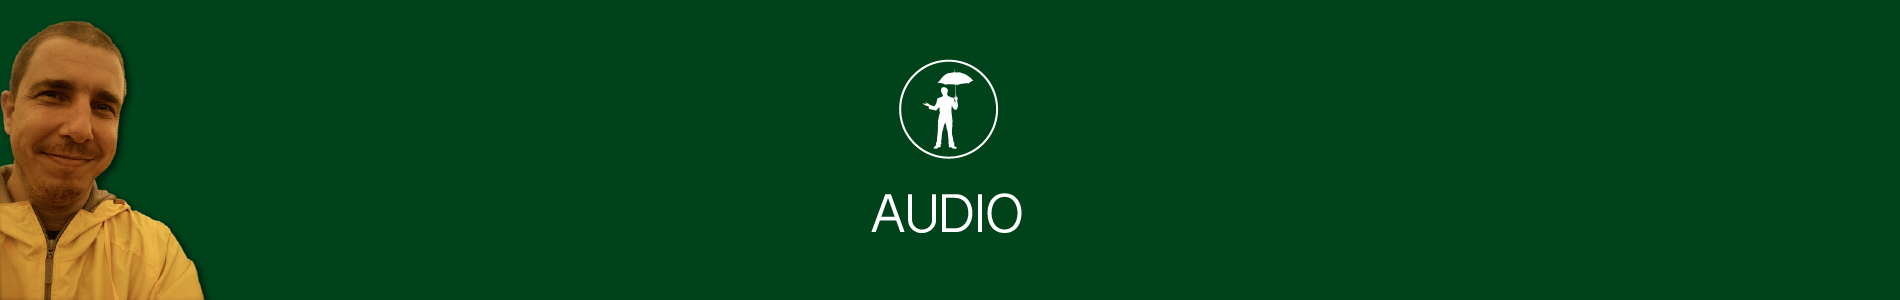 Header image for Audio page